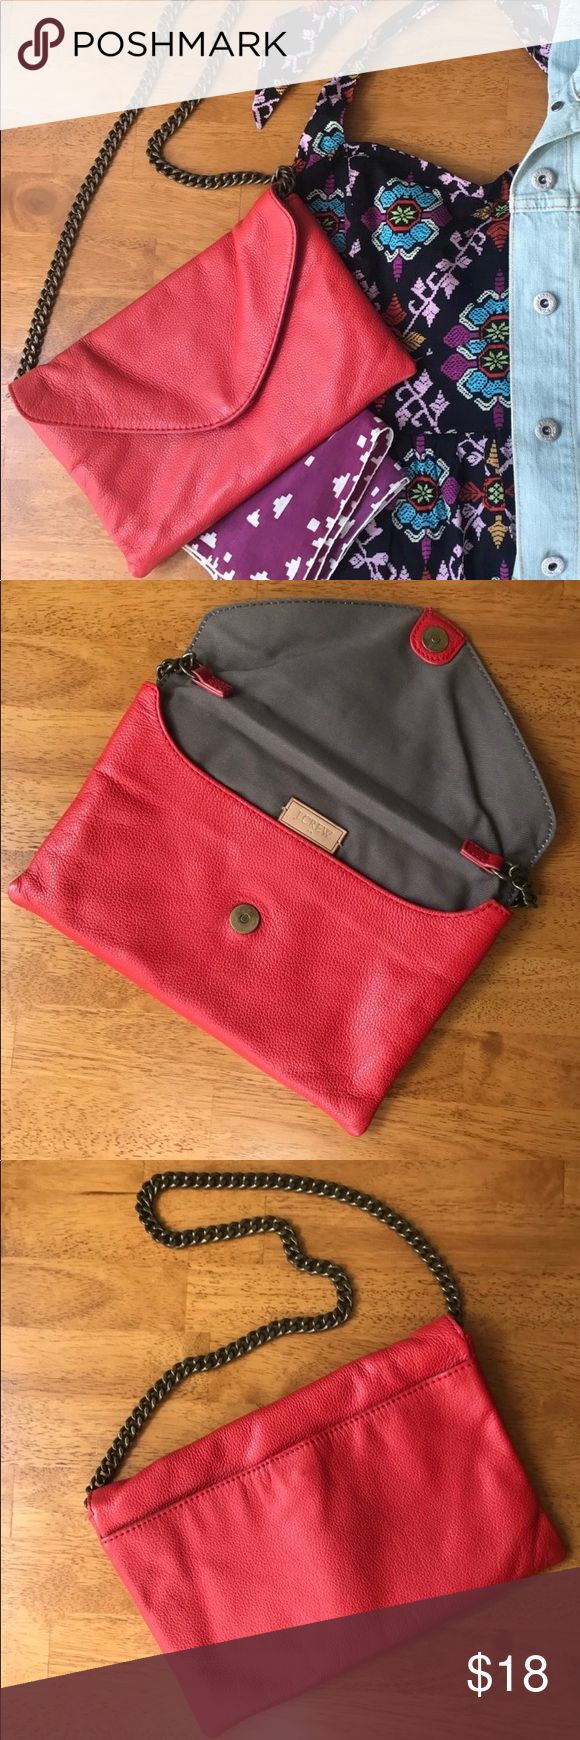 J Crew red leather clutch envelope purse J Crew red leather clutch envelope purse 👛 Great for your upcoming holiday party! J. Crew Bags Clutches & Wristlets